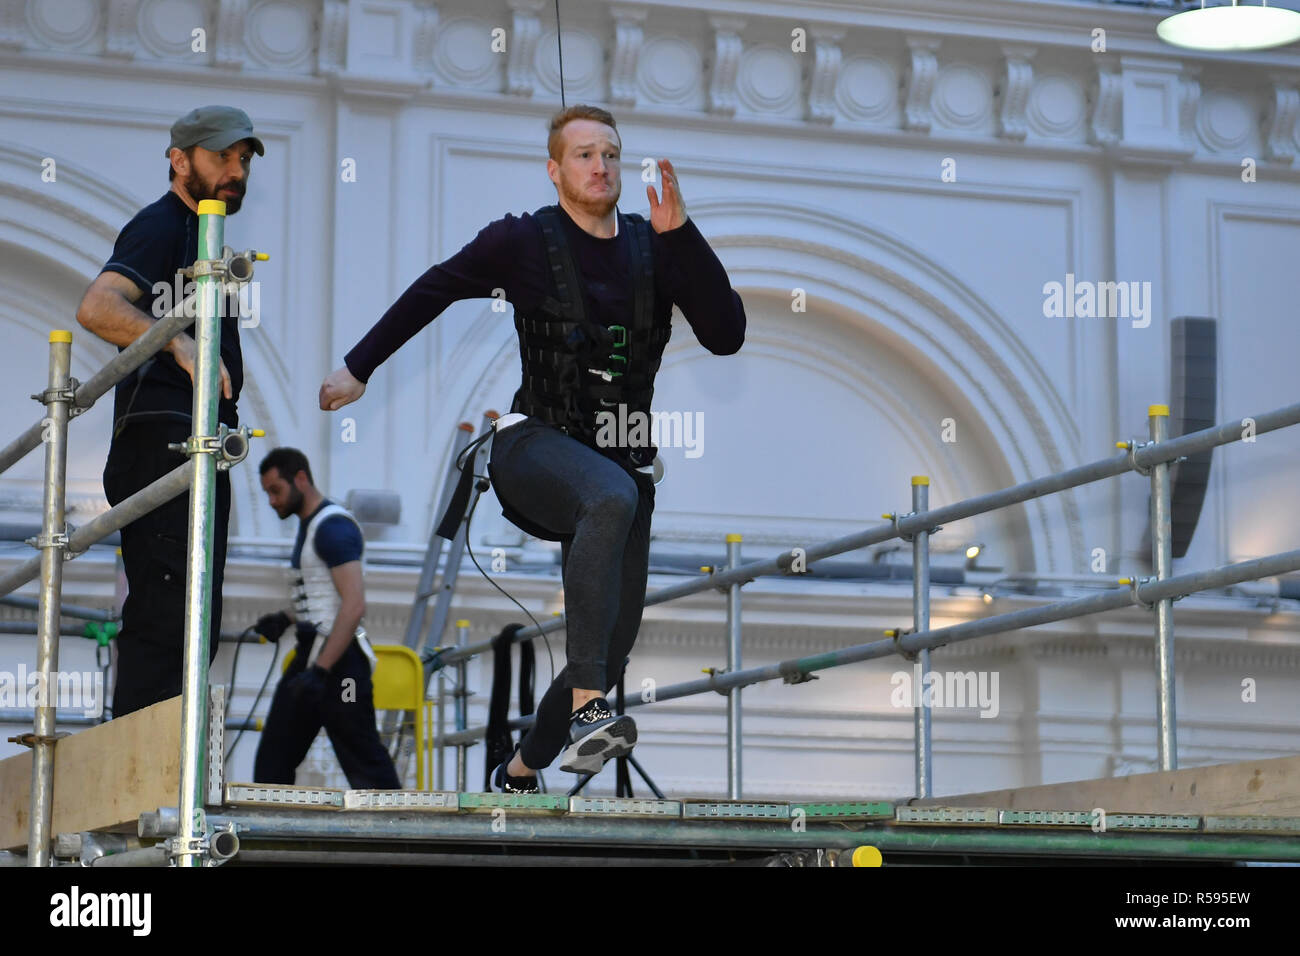 London, UK. 30th November, 2018. Greg Rutherford Launches New Experience Called: MISSION: IMPOSSIBLE – FALLOUT – THE LONG JUMP during Celebrate The Blu-Ray And DVD Release Of Mission: Impossible – Fallout at Lindley Hall on Friday, 30 November 2018. LONDON, ENGLAND. (Editorial use only, license required for commercial use. No use in betting, games or a single club/league/player publications.) Credit: Taka G Wu/Alamy News Stock Photo